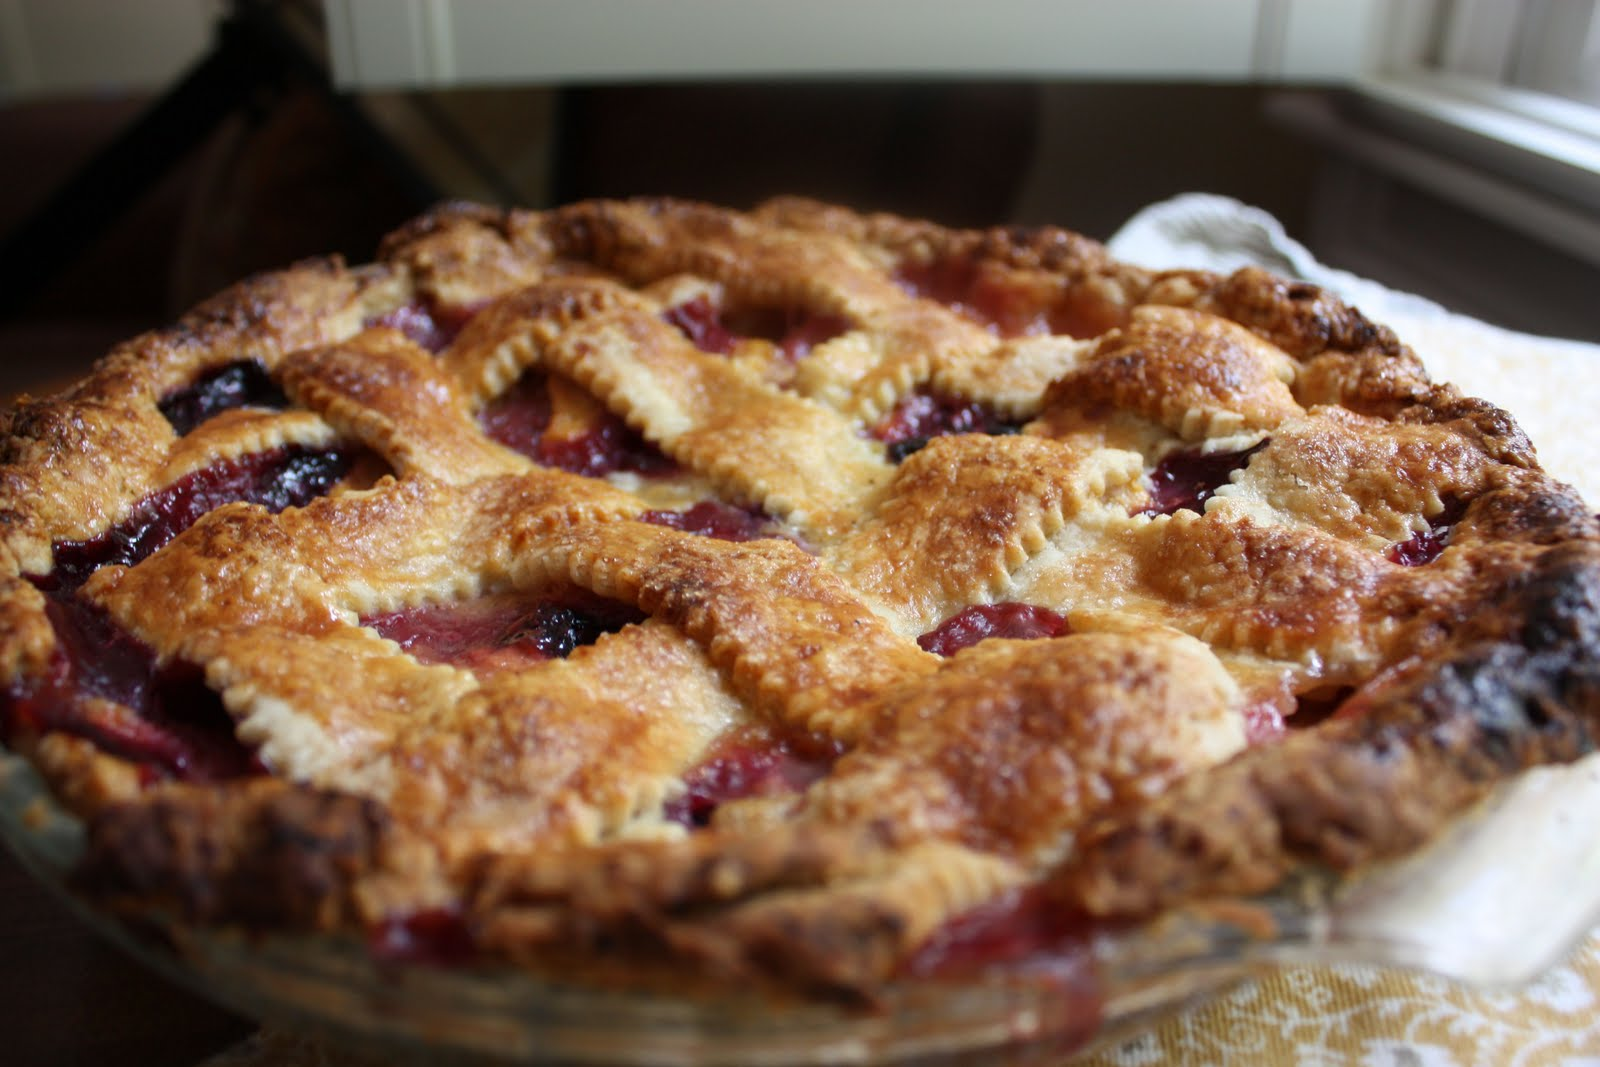 soulful college girl.: Peach and Blueberry Lattice Pie